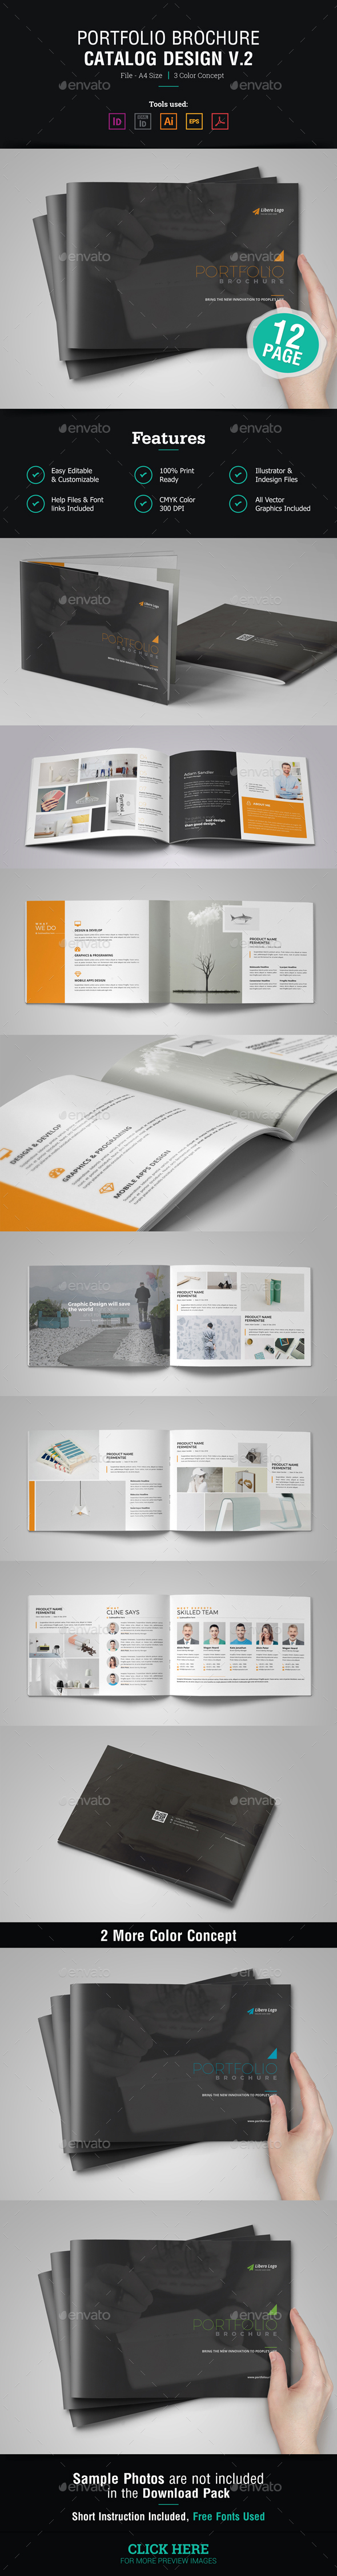 GraphicRiver Portfolio Brochure Design v2 20381241